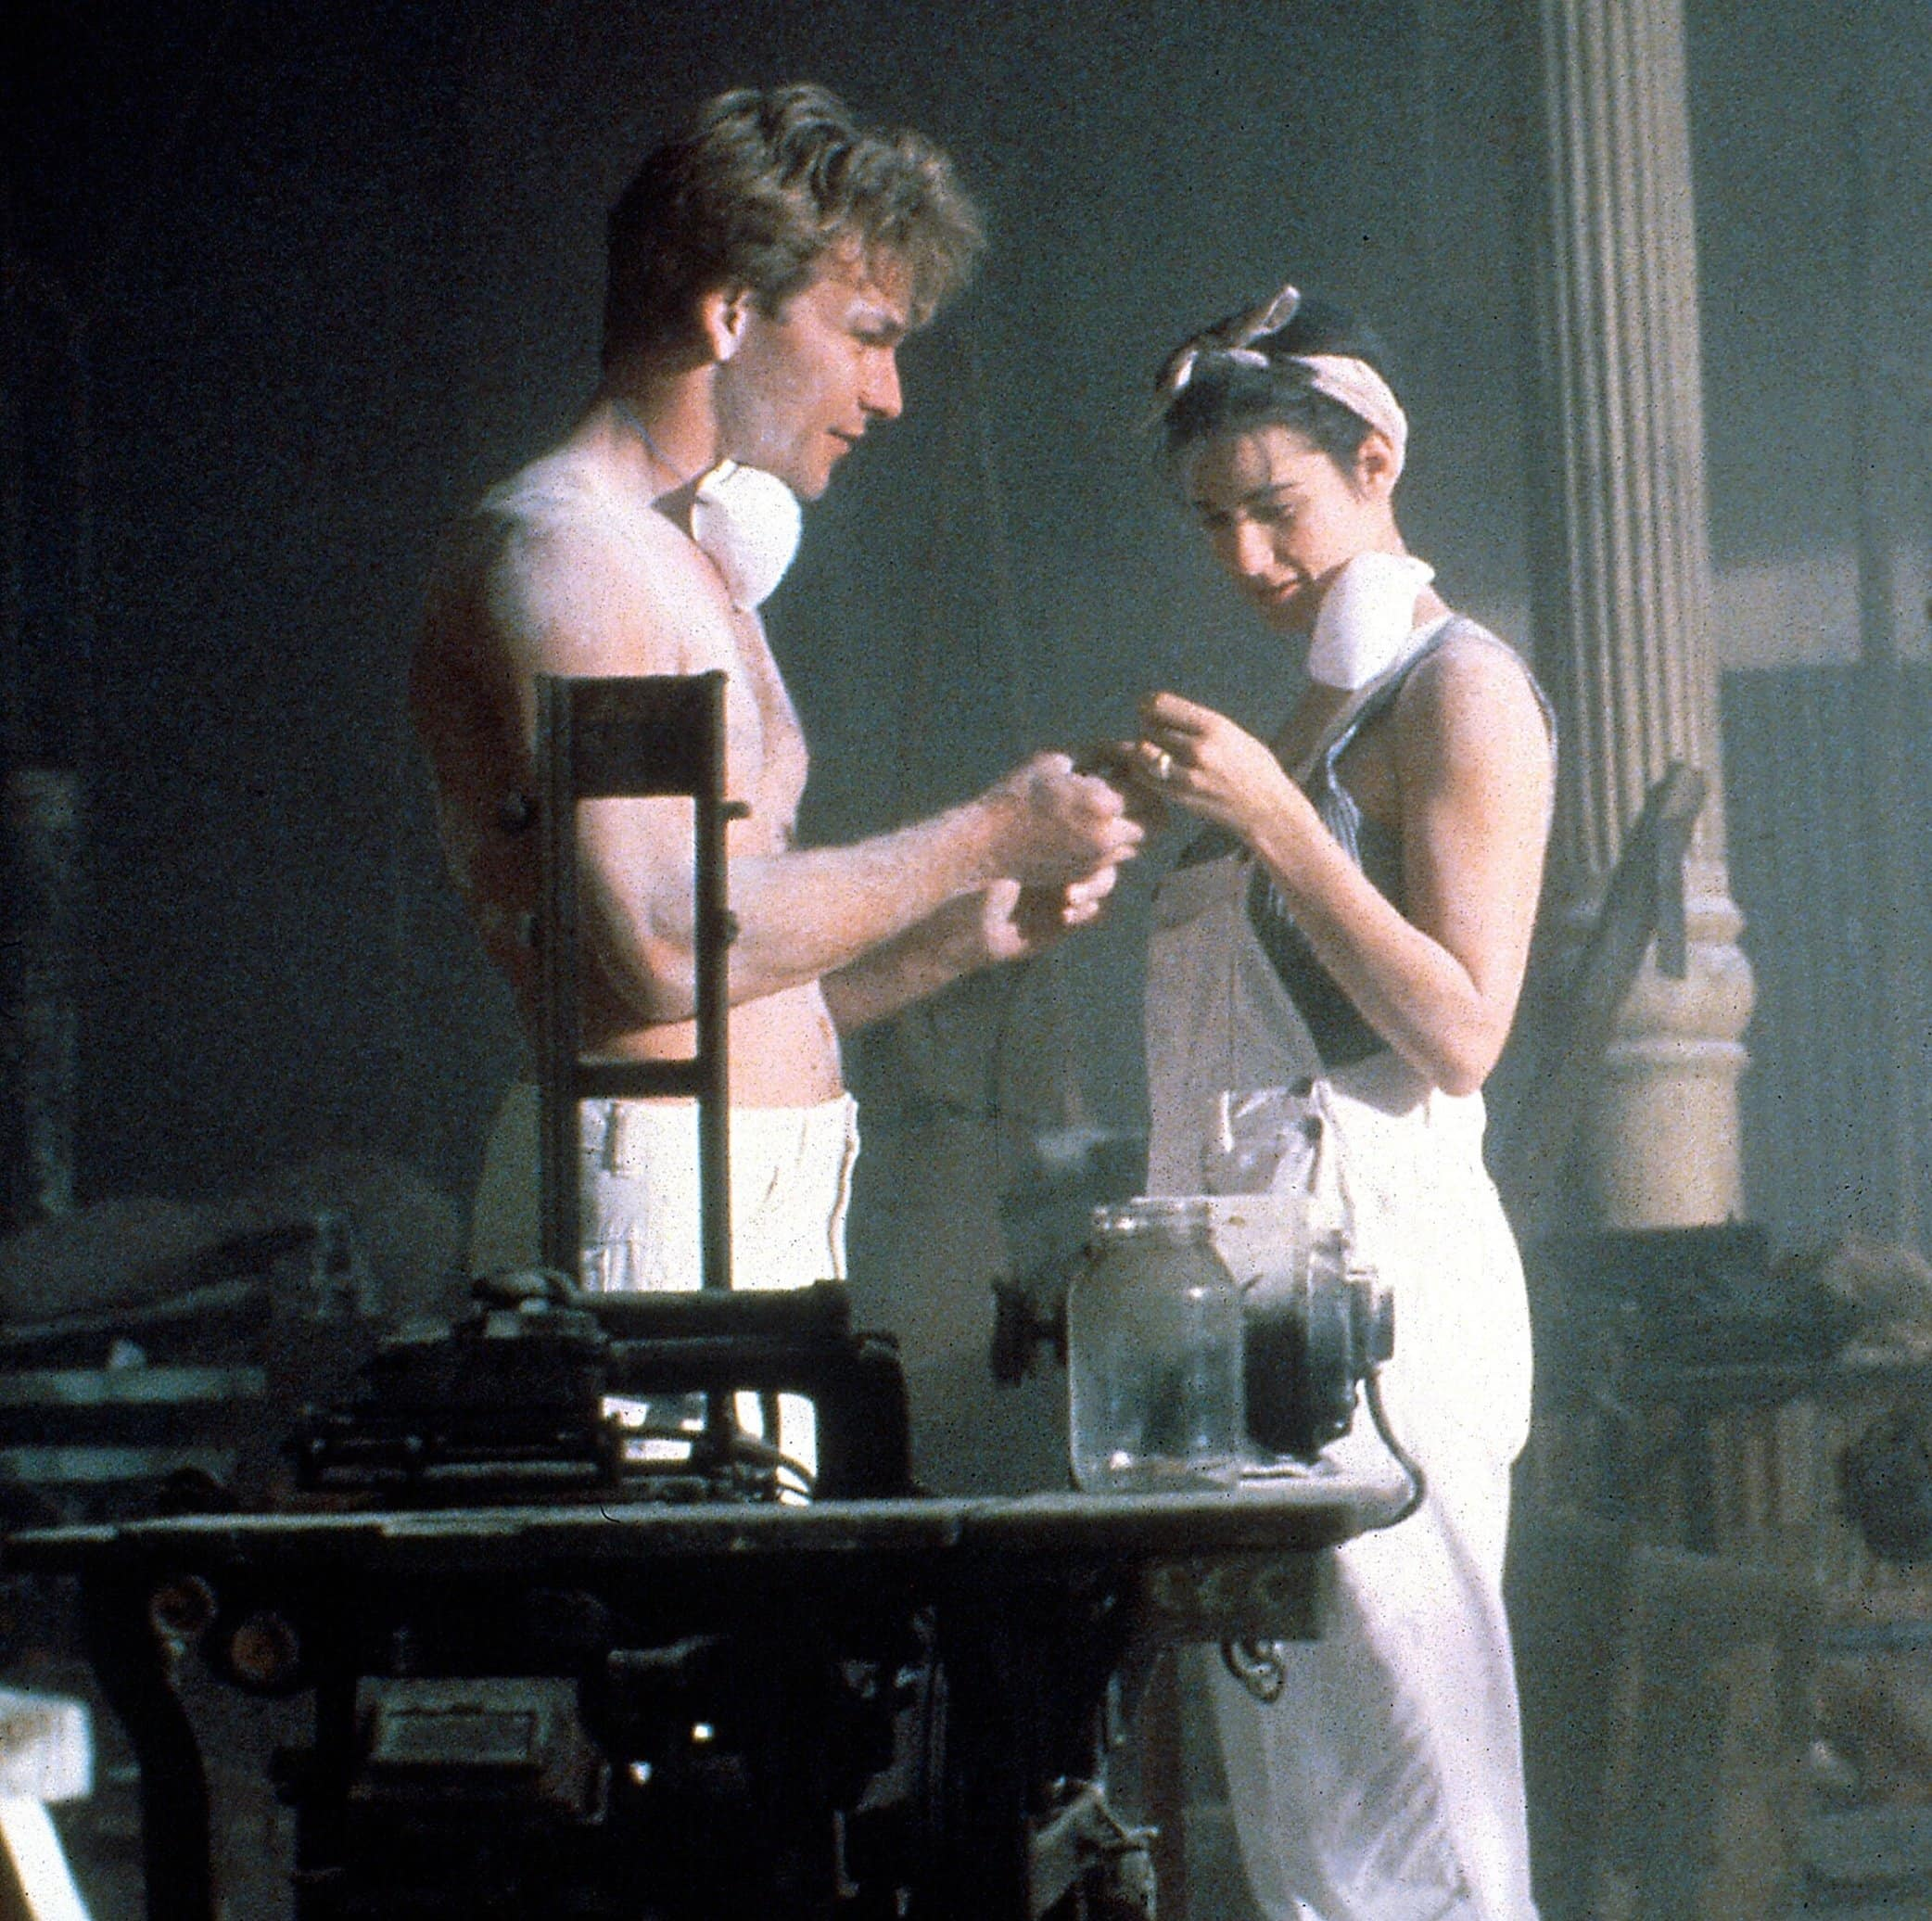 Patrick Swayze as Sam Wheat and Demi Moore as Molly Jensen in the 1990 American romantic fantasy thriller film Ghost